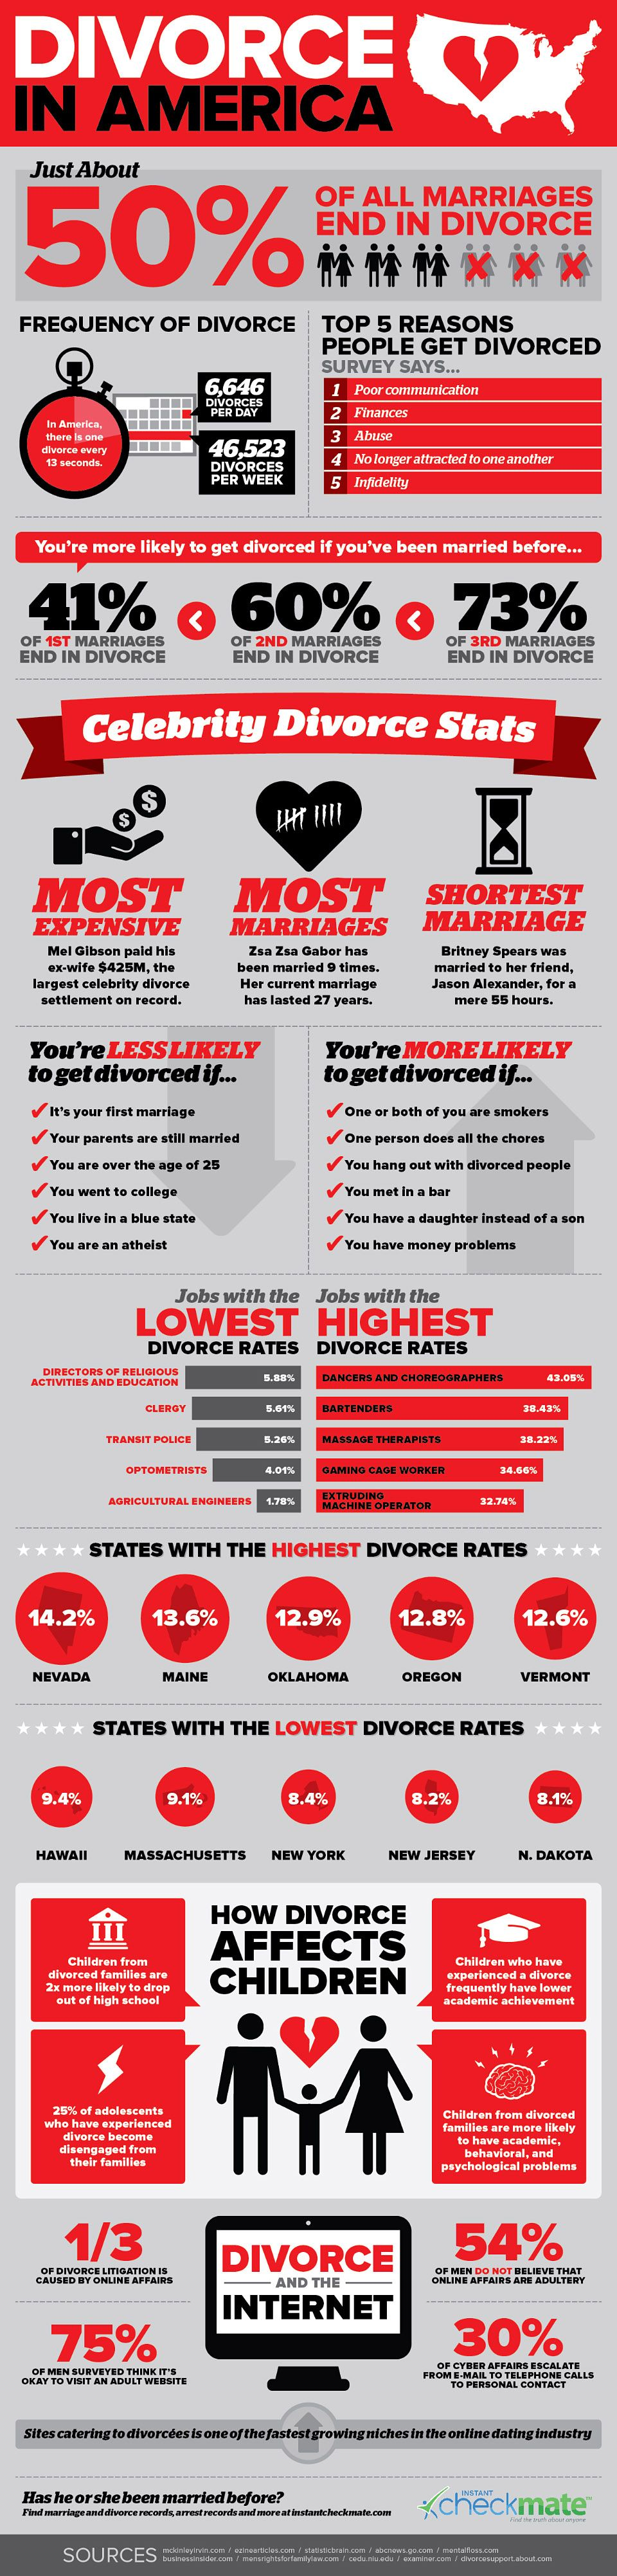 Divorce In America infographics by Instant Checkmate.